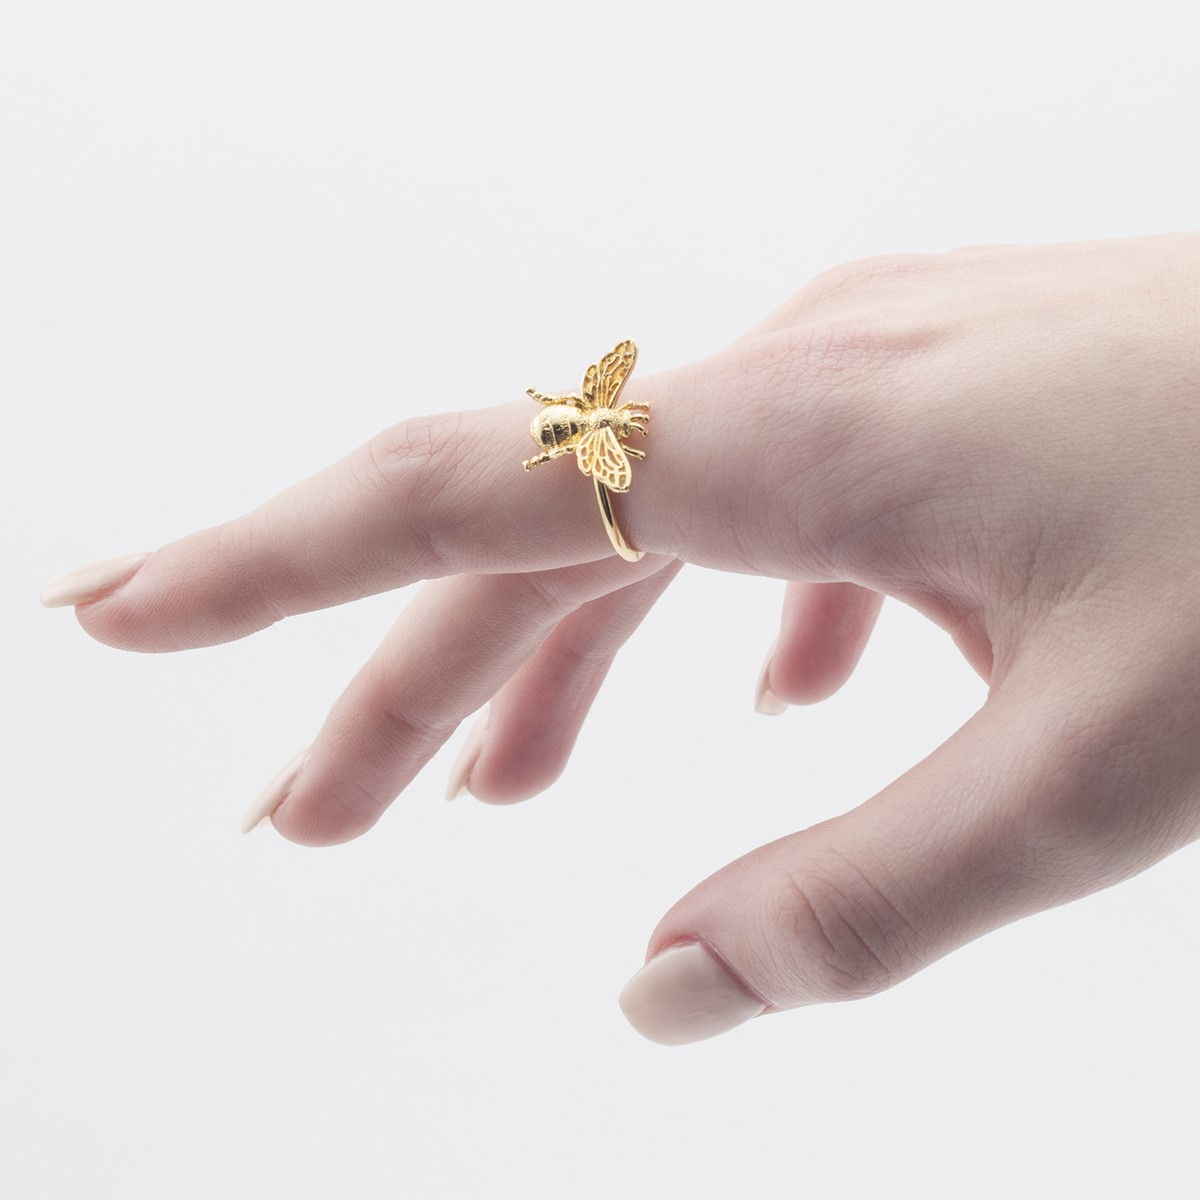 Queen bee gold-plated open ring